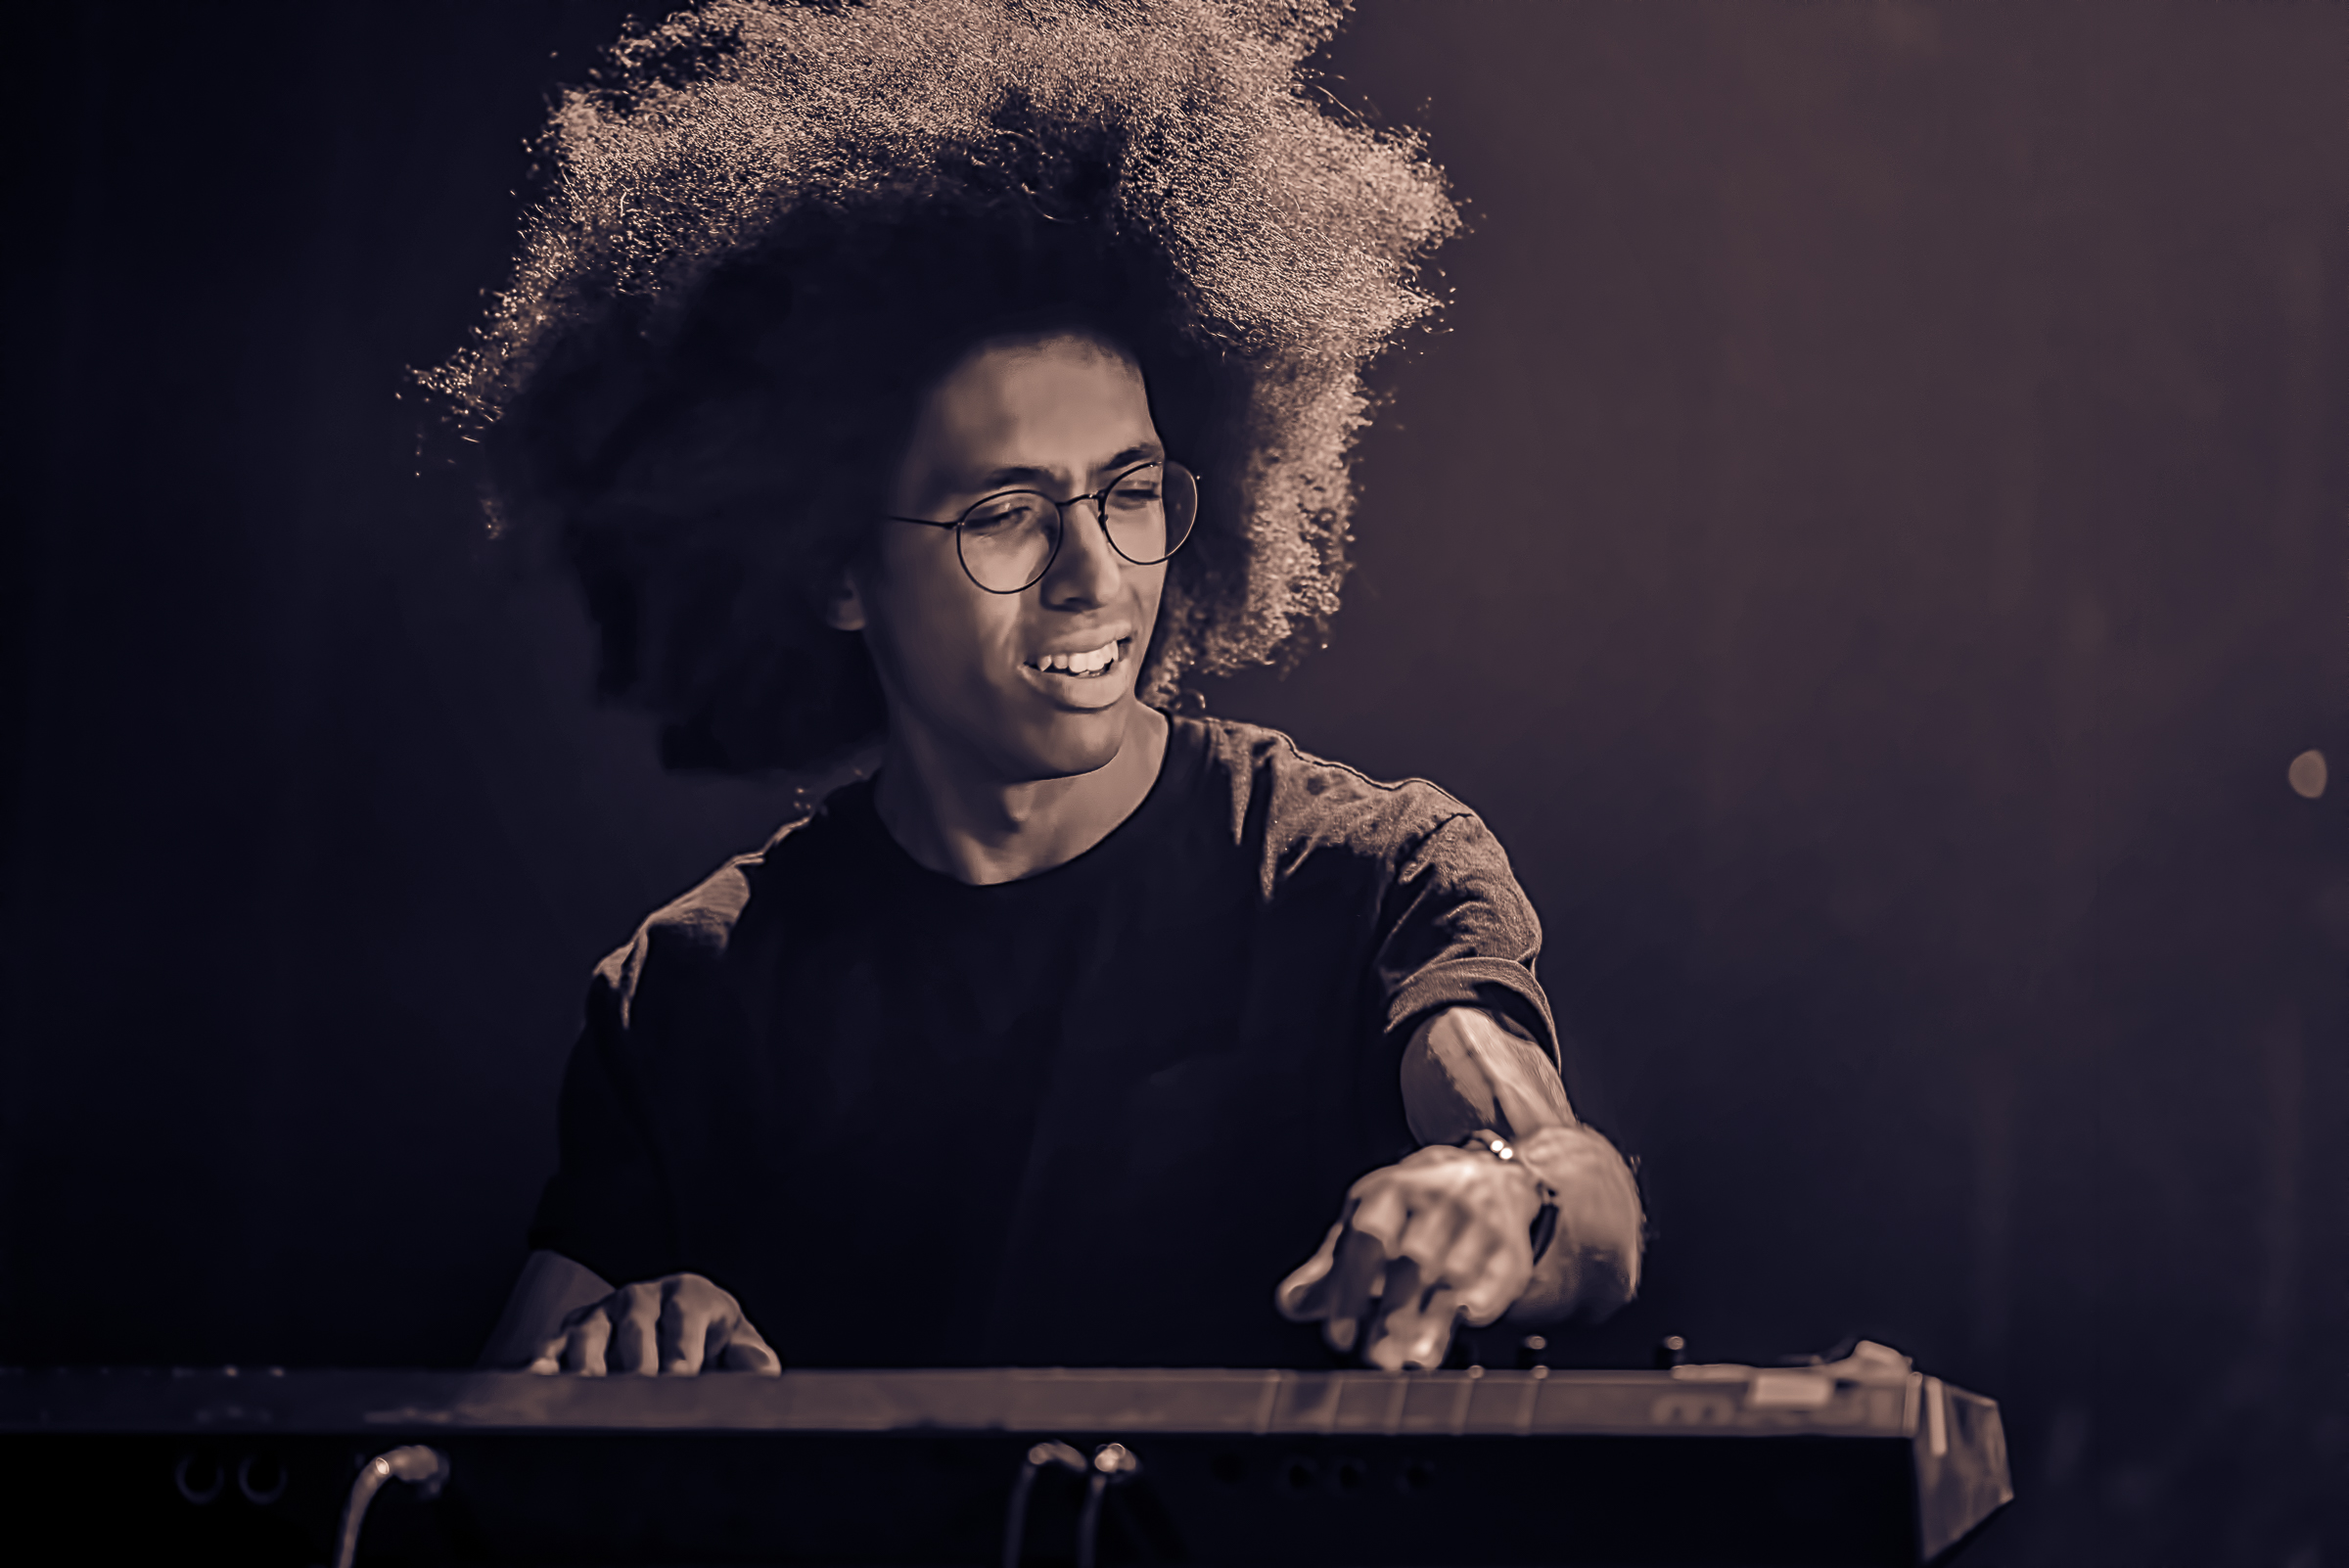 Alexis Alina With Anomalie At The Montreal International Jazz Festival 2018